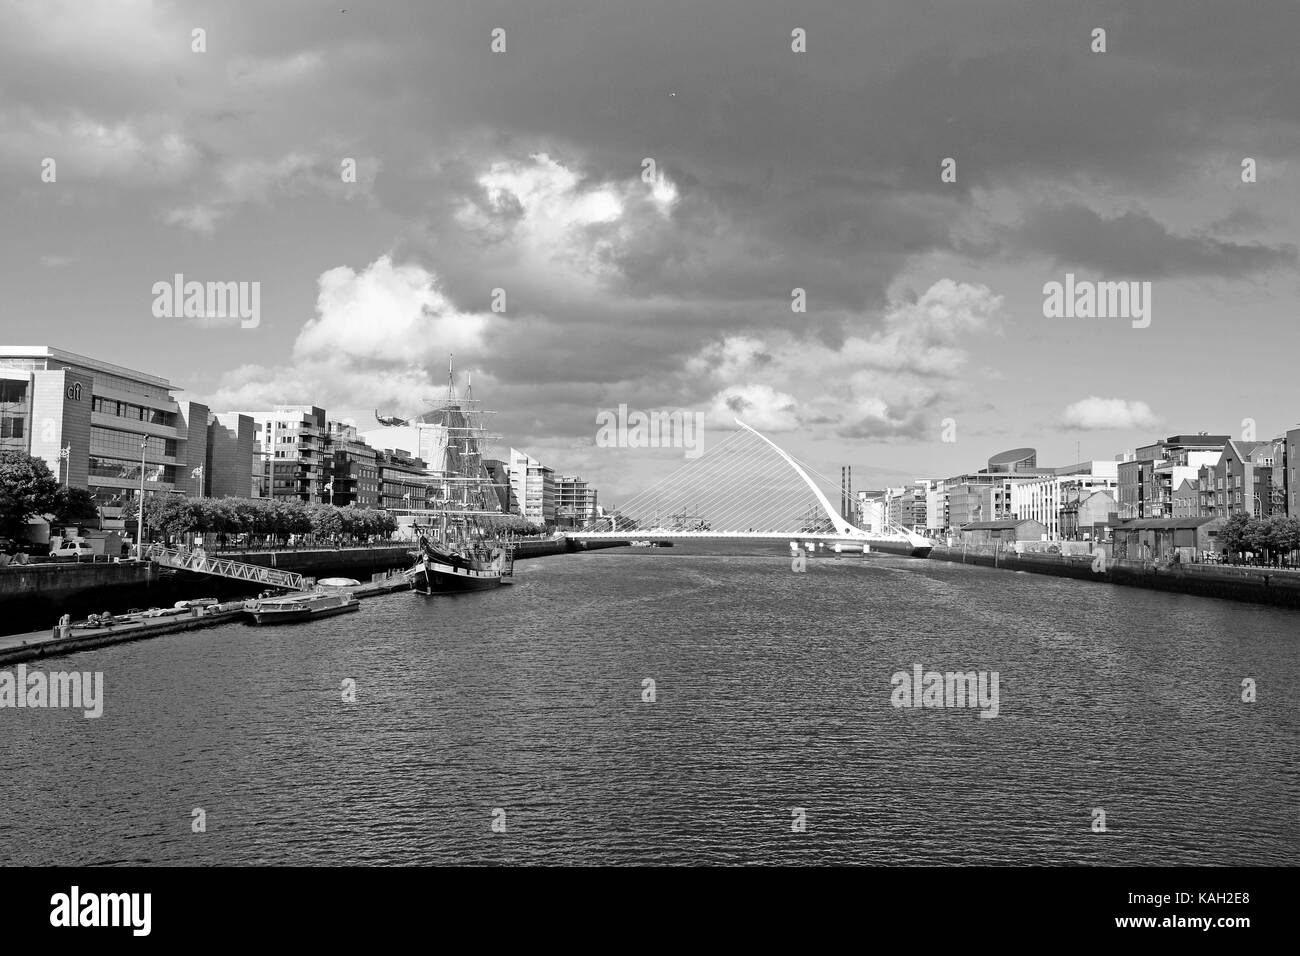 Since 2009 the Samuel Beckett Bridge has crossed the River Liffey connecting Sir John Rogerson's Quay with the - Stock Image